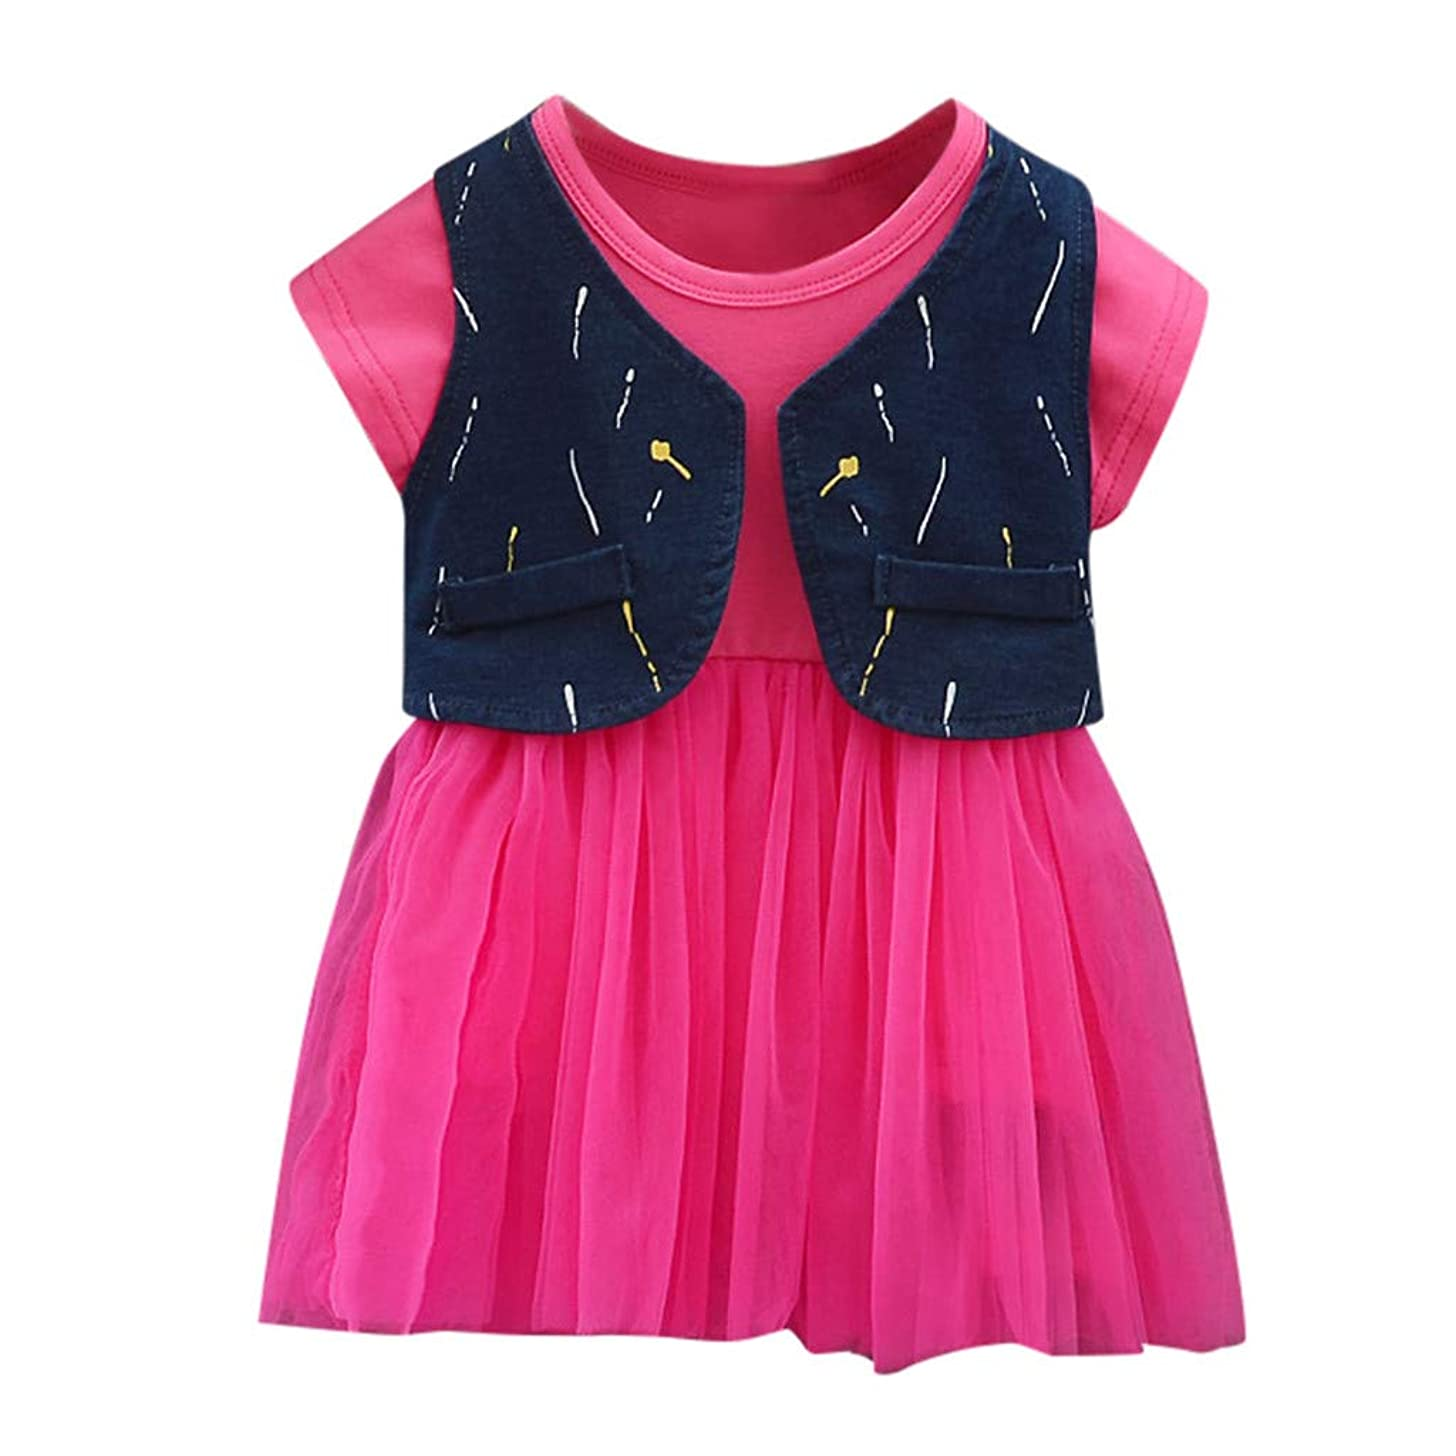 TIFENNY Toddler Baby Casual Dresses Kids Girls Crewneck Sleeveless Tulle Flowers Ruched Dress Princess Dresses